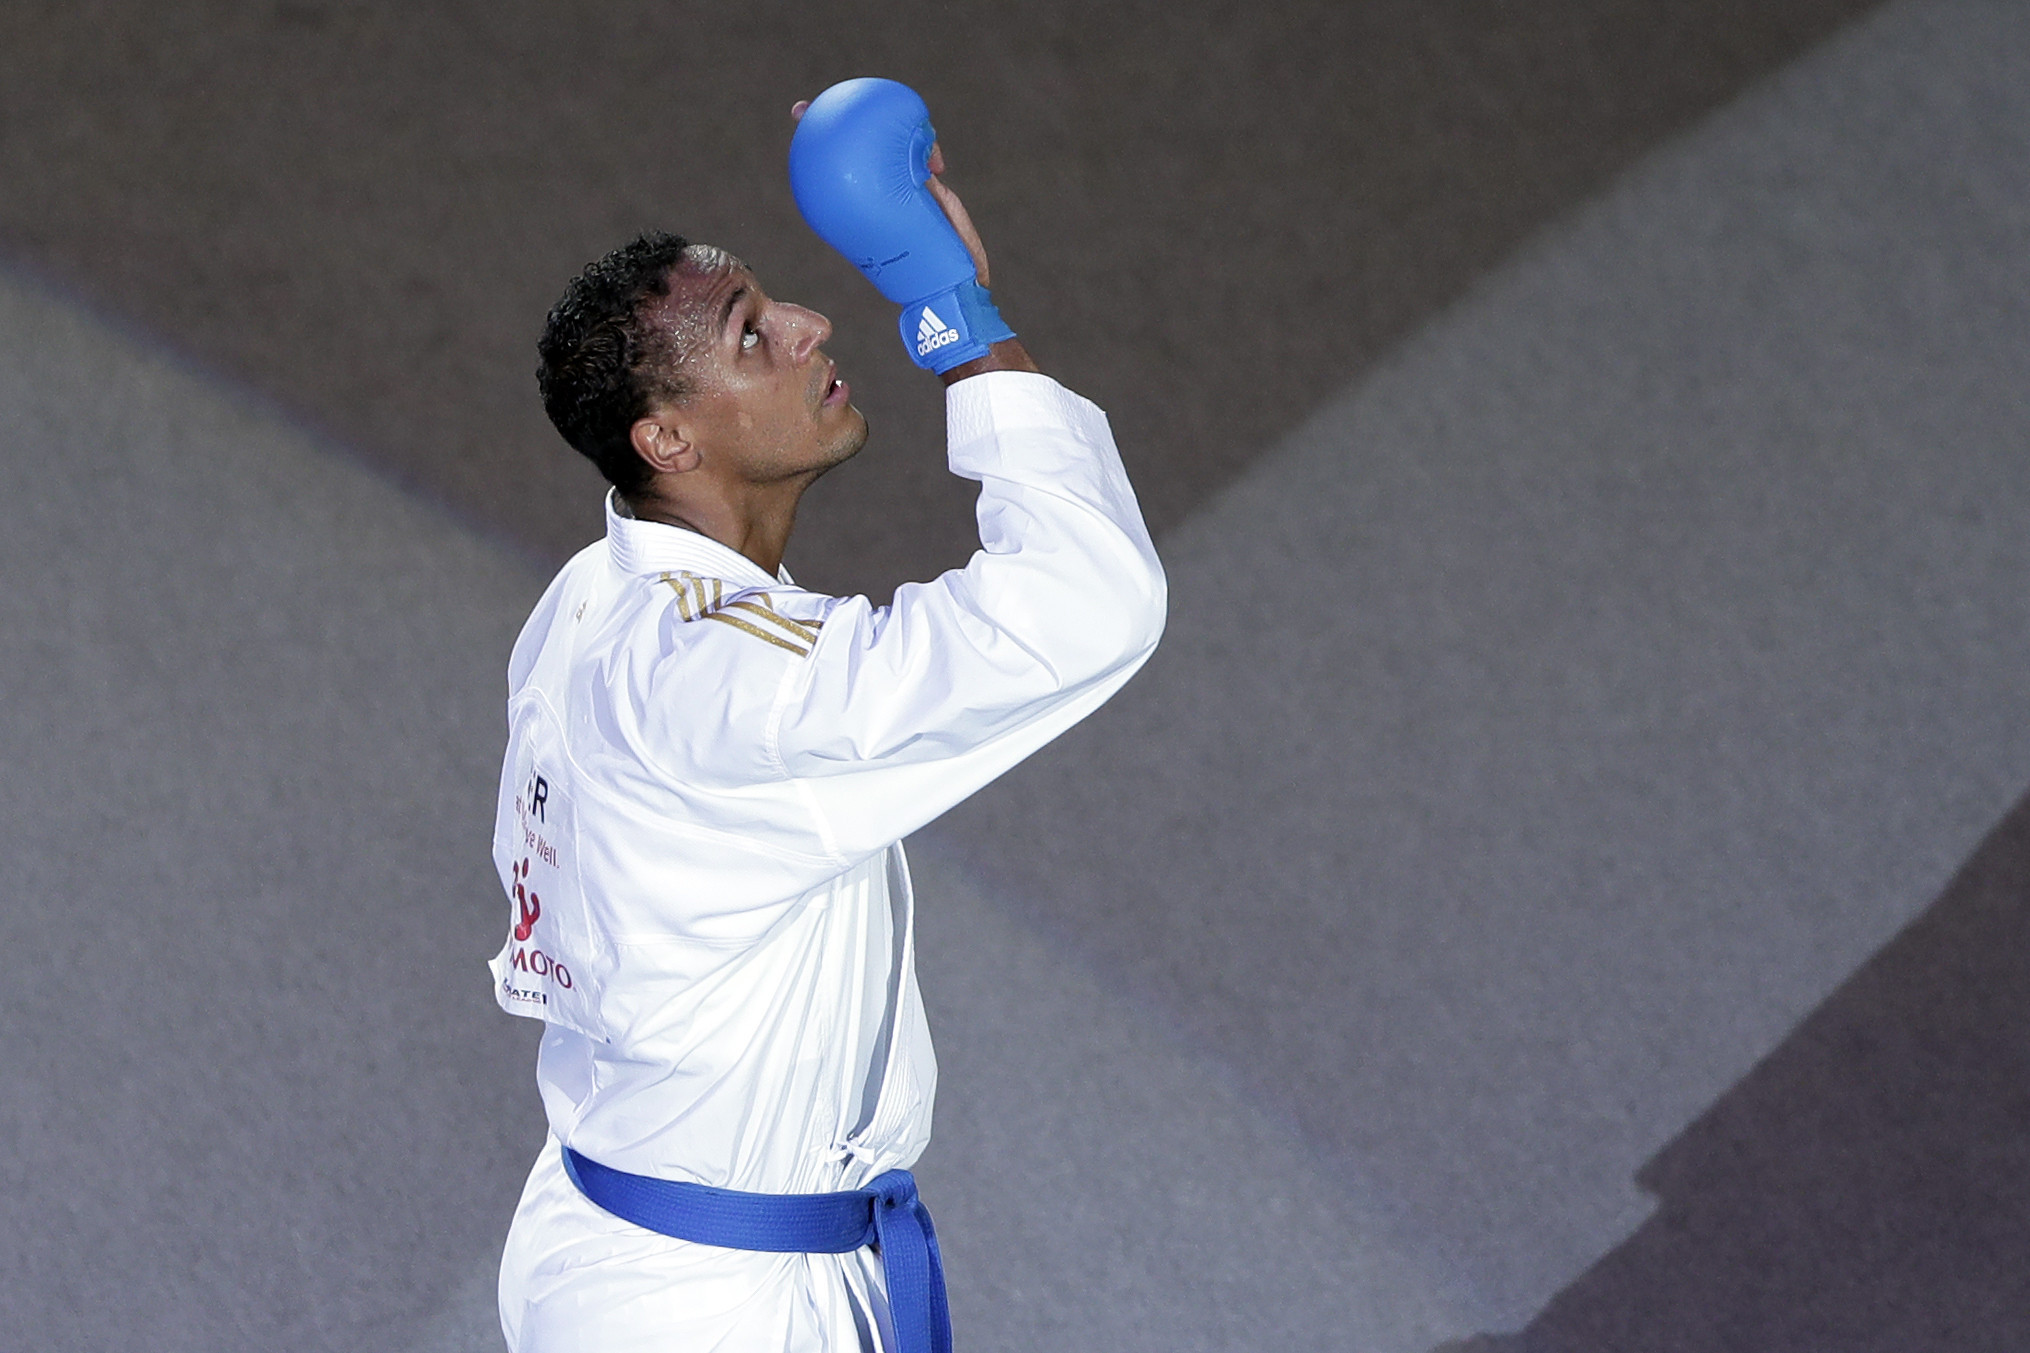 Horne books Tokyo 2020 berth on first day of European Karate Championships